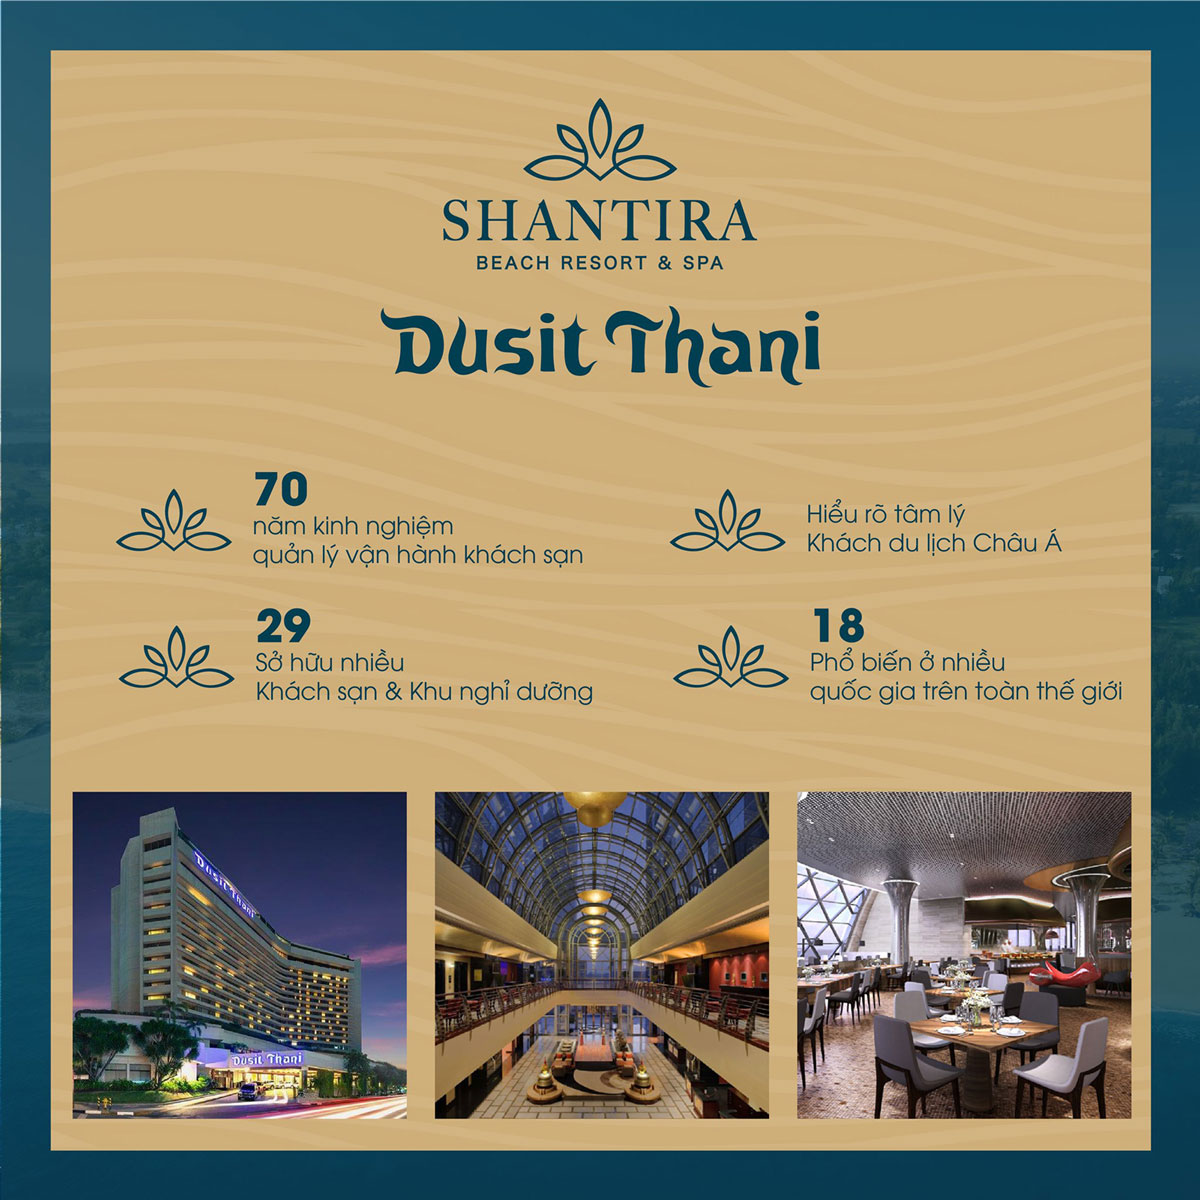 dusit thani - don vi quan ly shantira hoi an